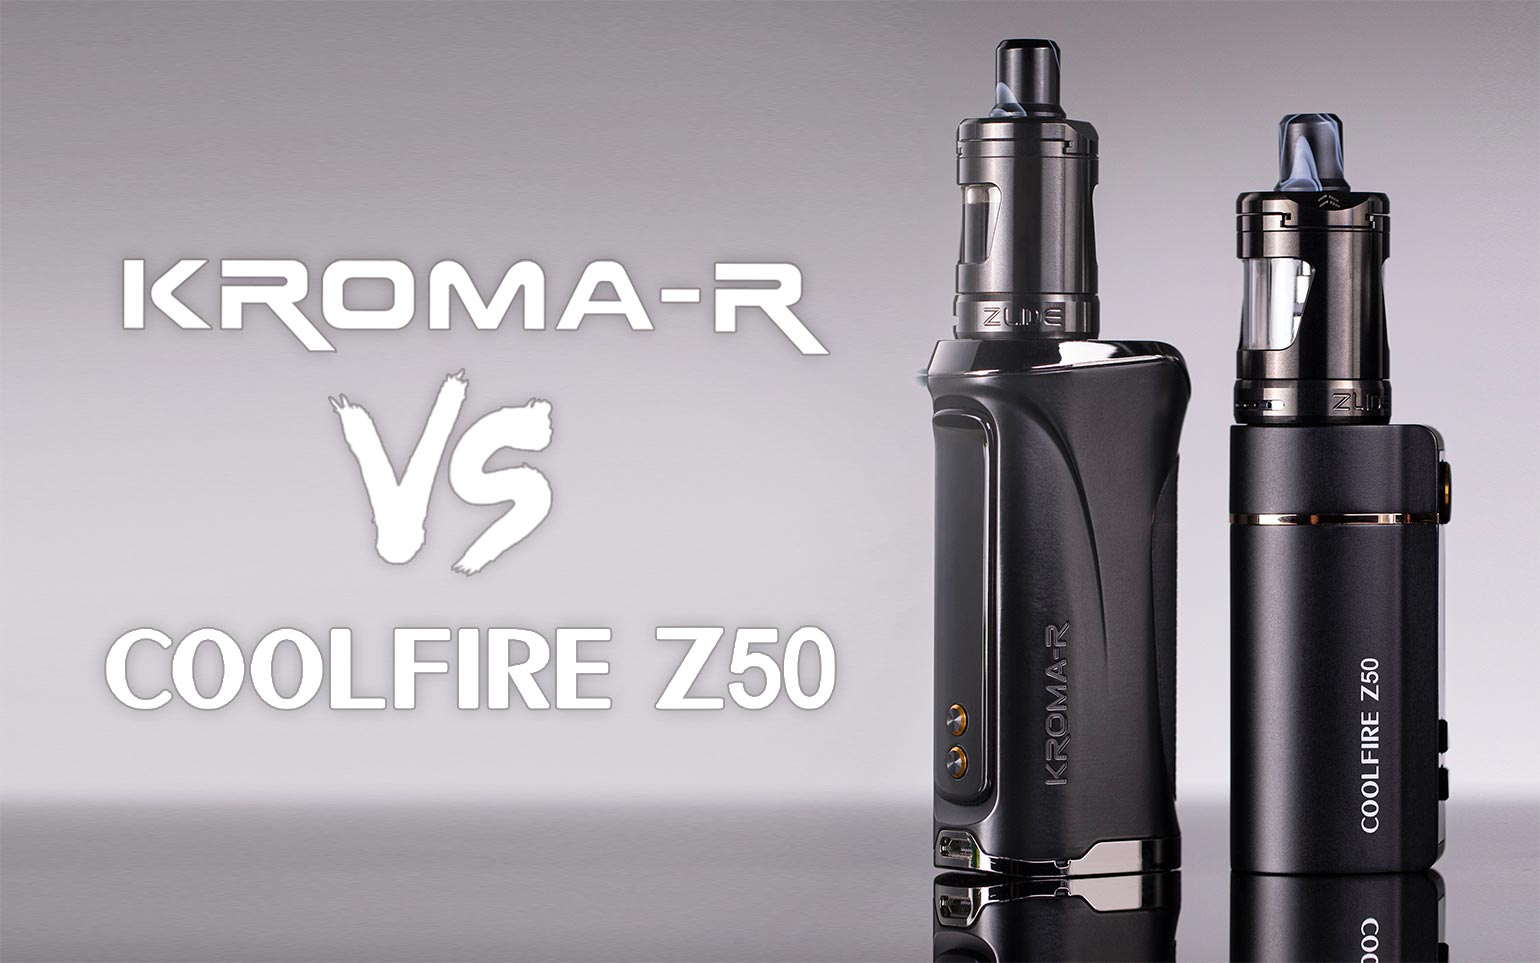 Coolfire Z50 vs. Kroma-R: What is the difference?